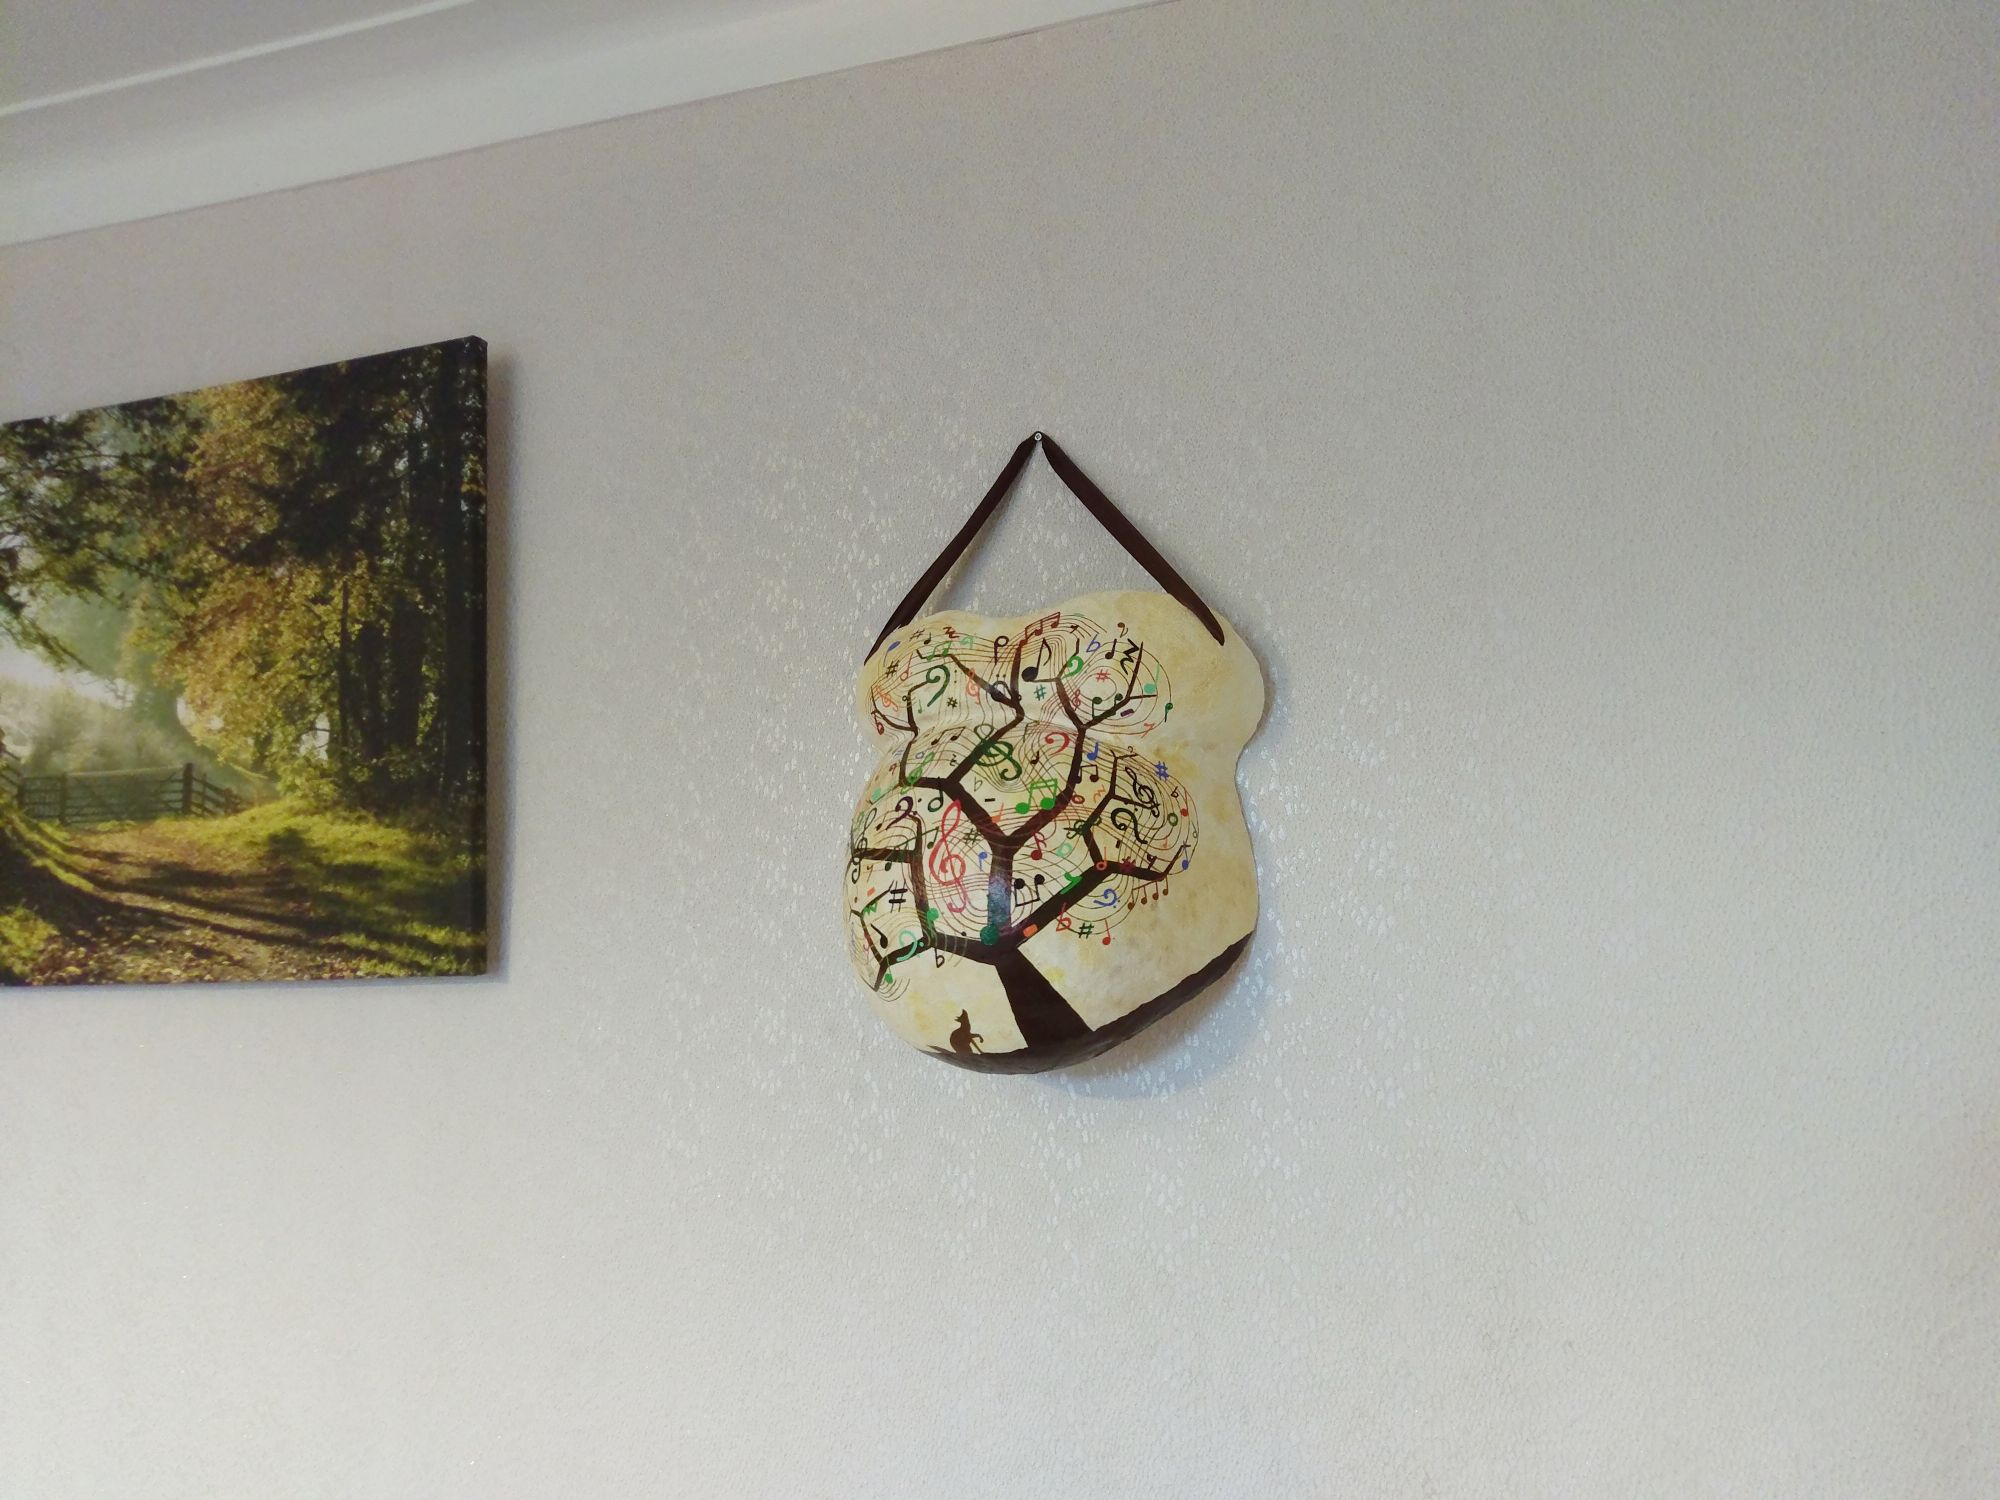 A completed bellycast hanging on a wall.